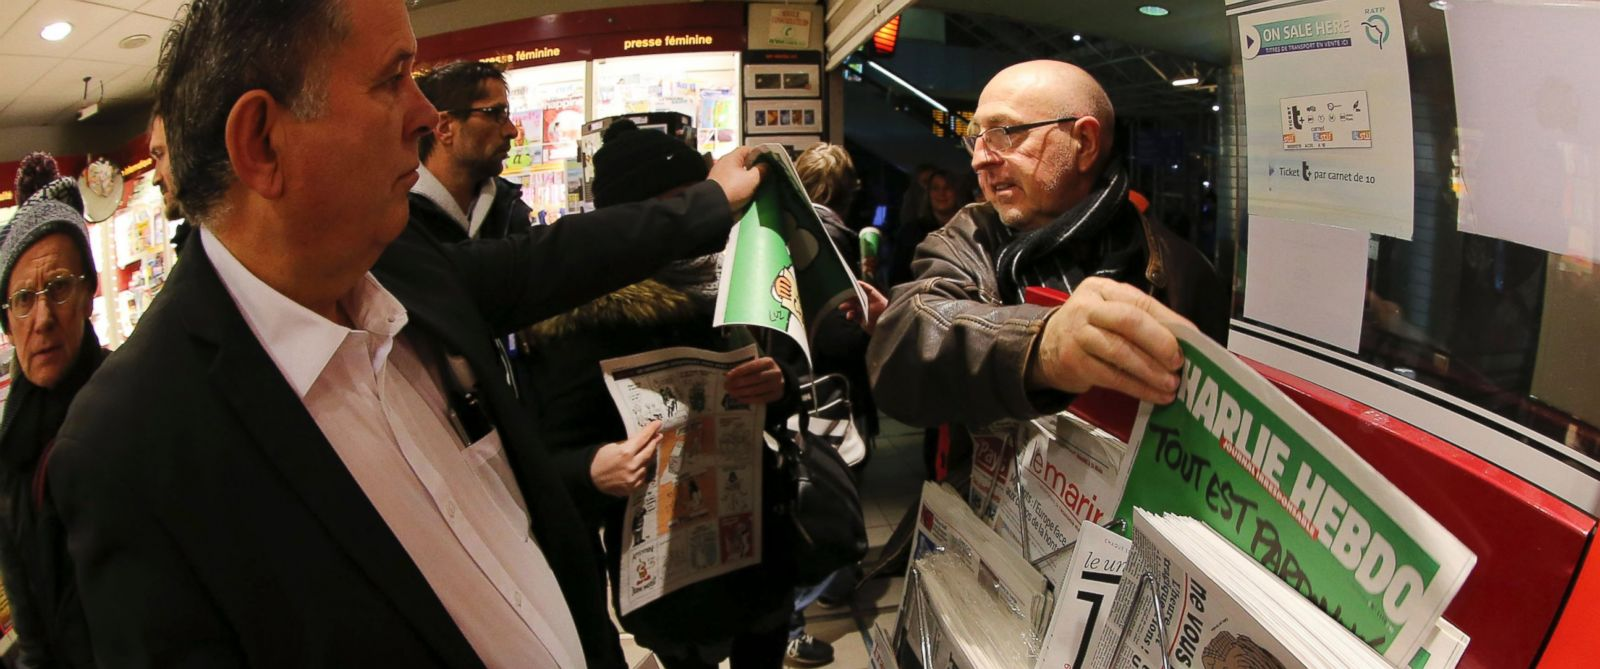 PHOTO: In this photo made with a fish-eye lens, people pick up copies of Charlie Hebdo newspaper at a newsstand in Rennes, western France, Jan. 14, 2015.